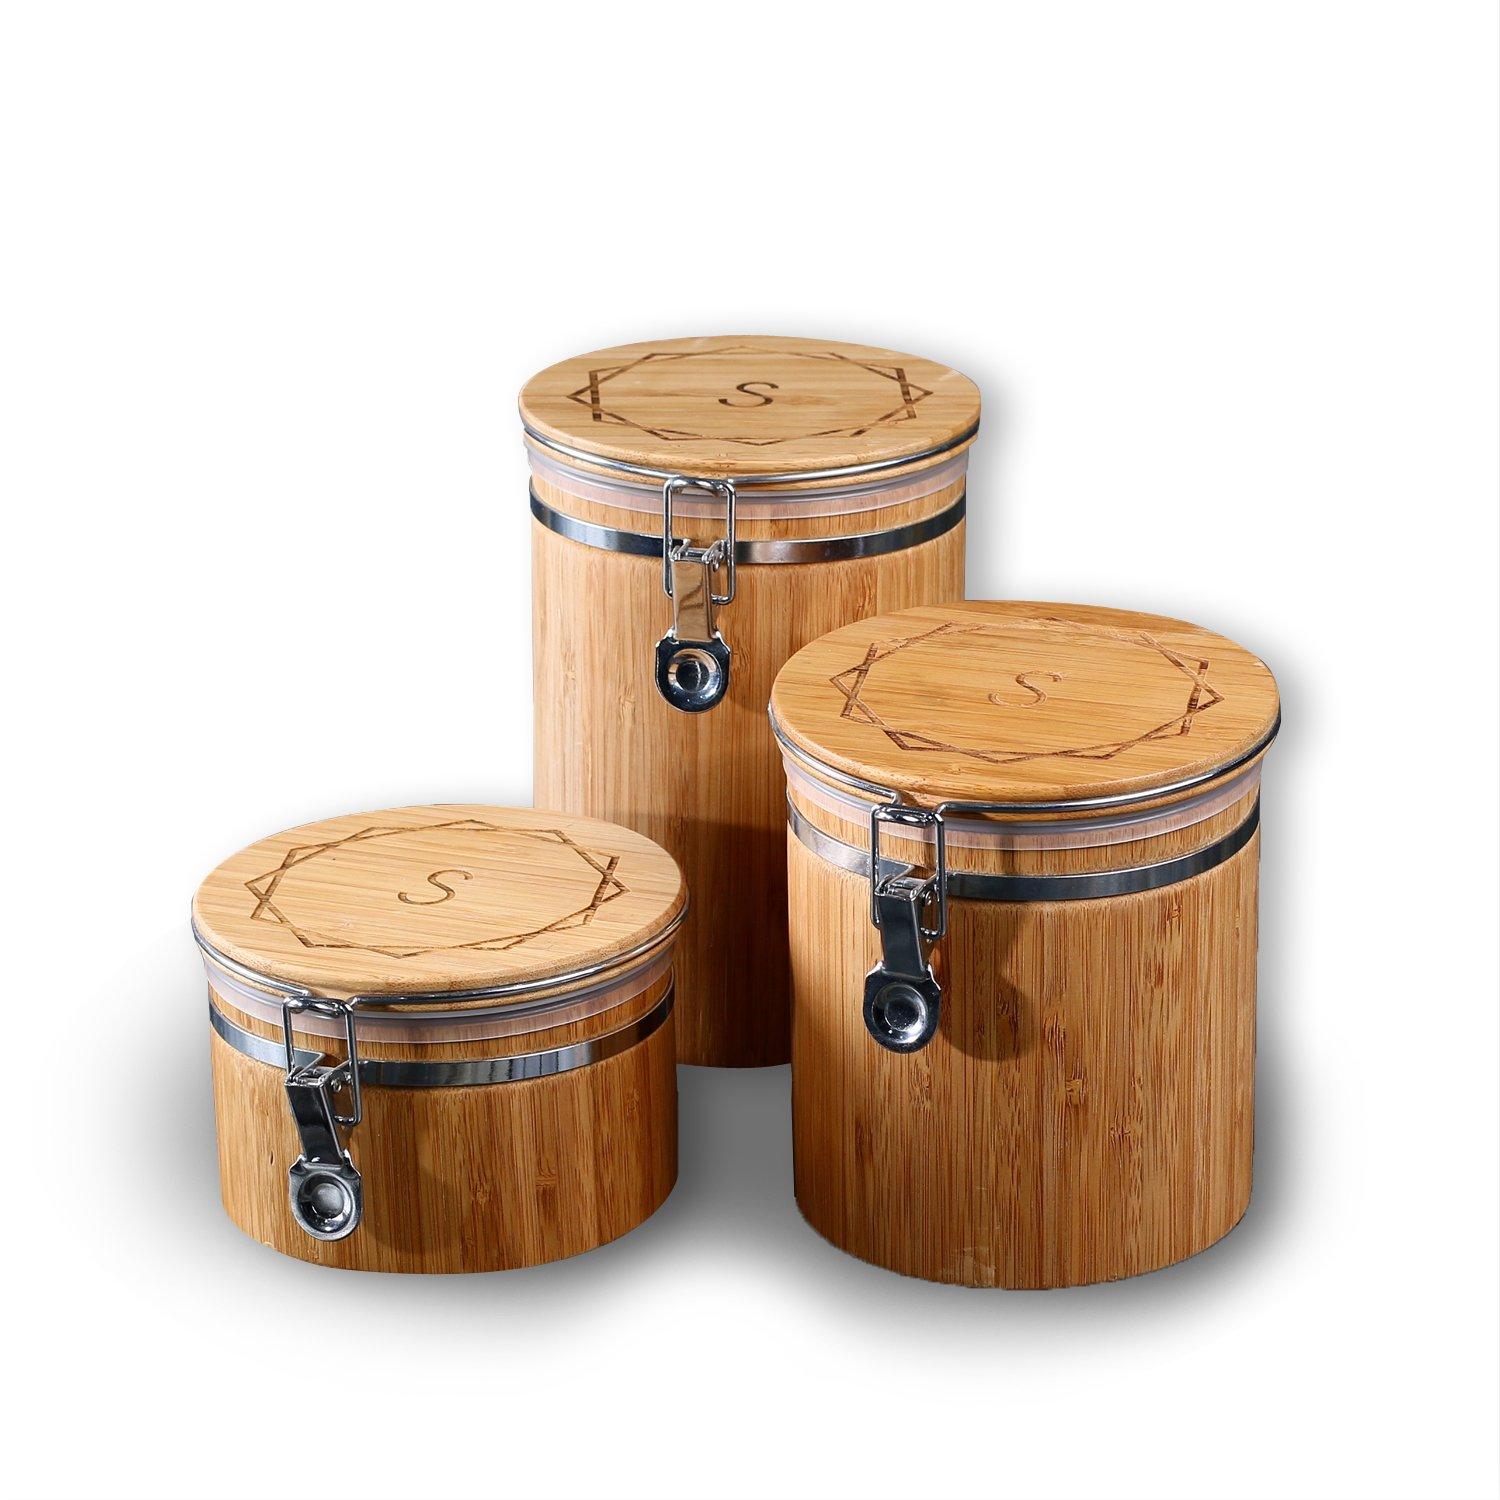 DG Custom Set of 3 Personalized Wooden Bamboo Canisters in Three Sizes - Free Custom Engraving - Best Gift for the New House